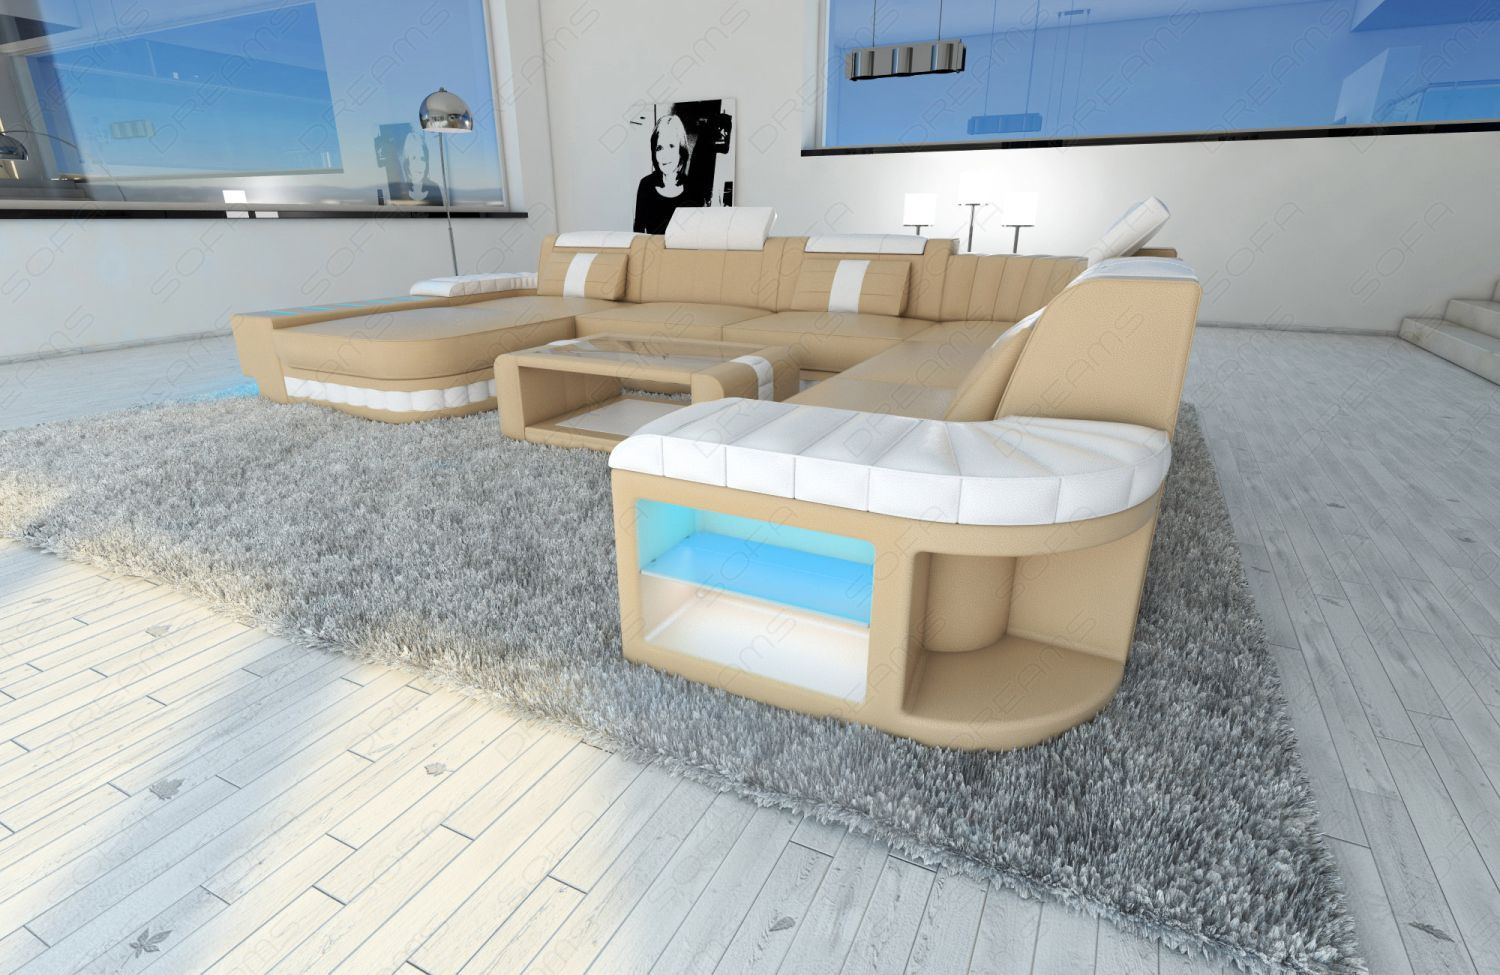 xxl leather sectional sofa bellagio with led lighting. Black Bedroom Furniture Sets. Home Design Ideas